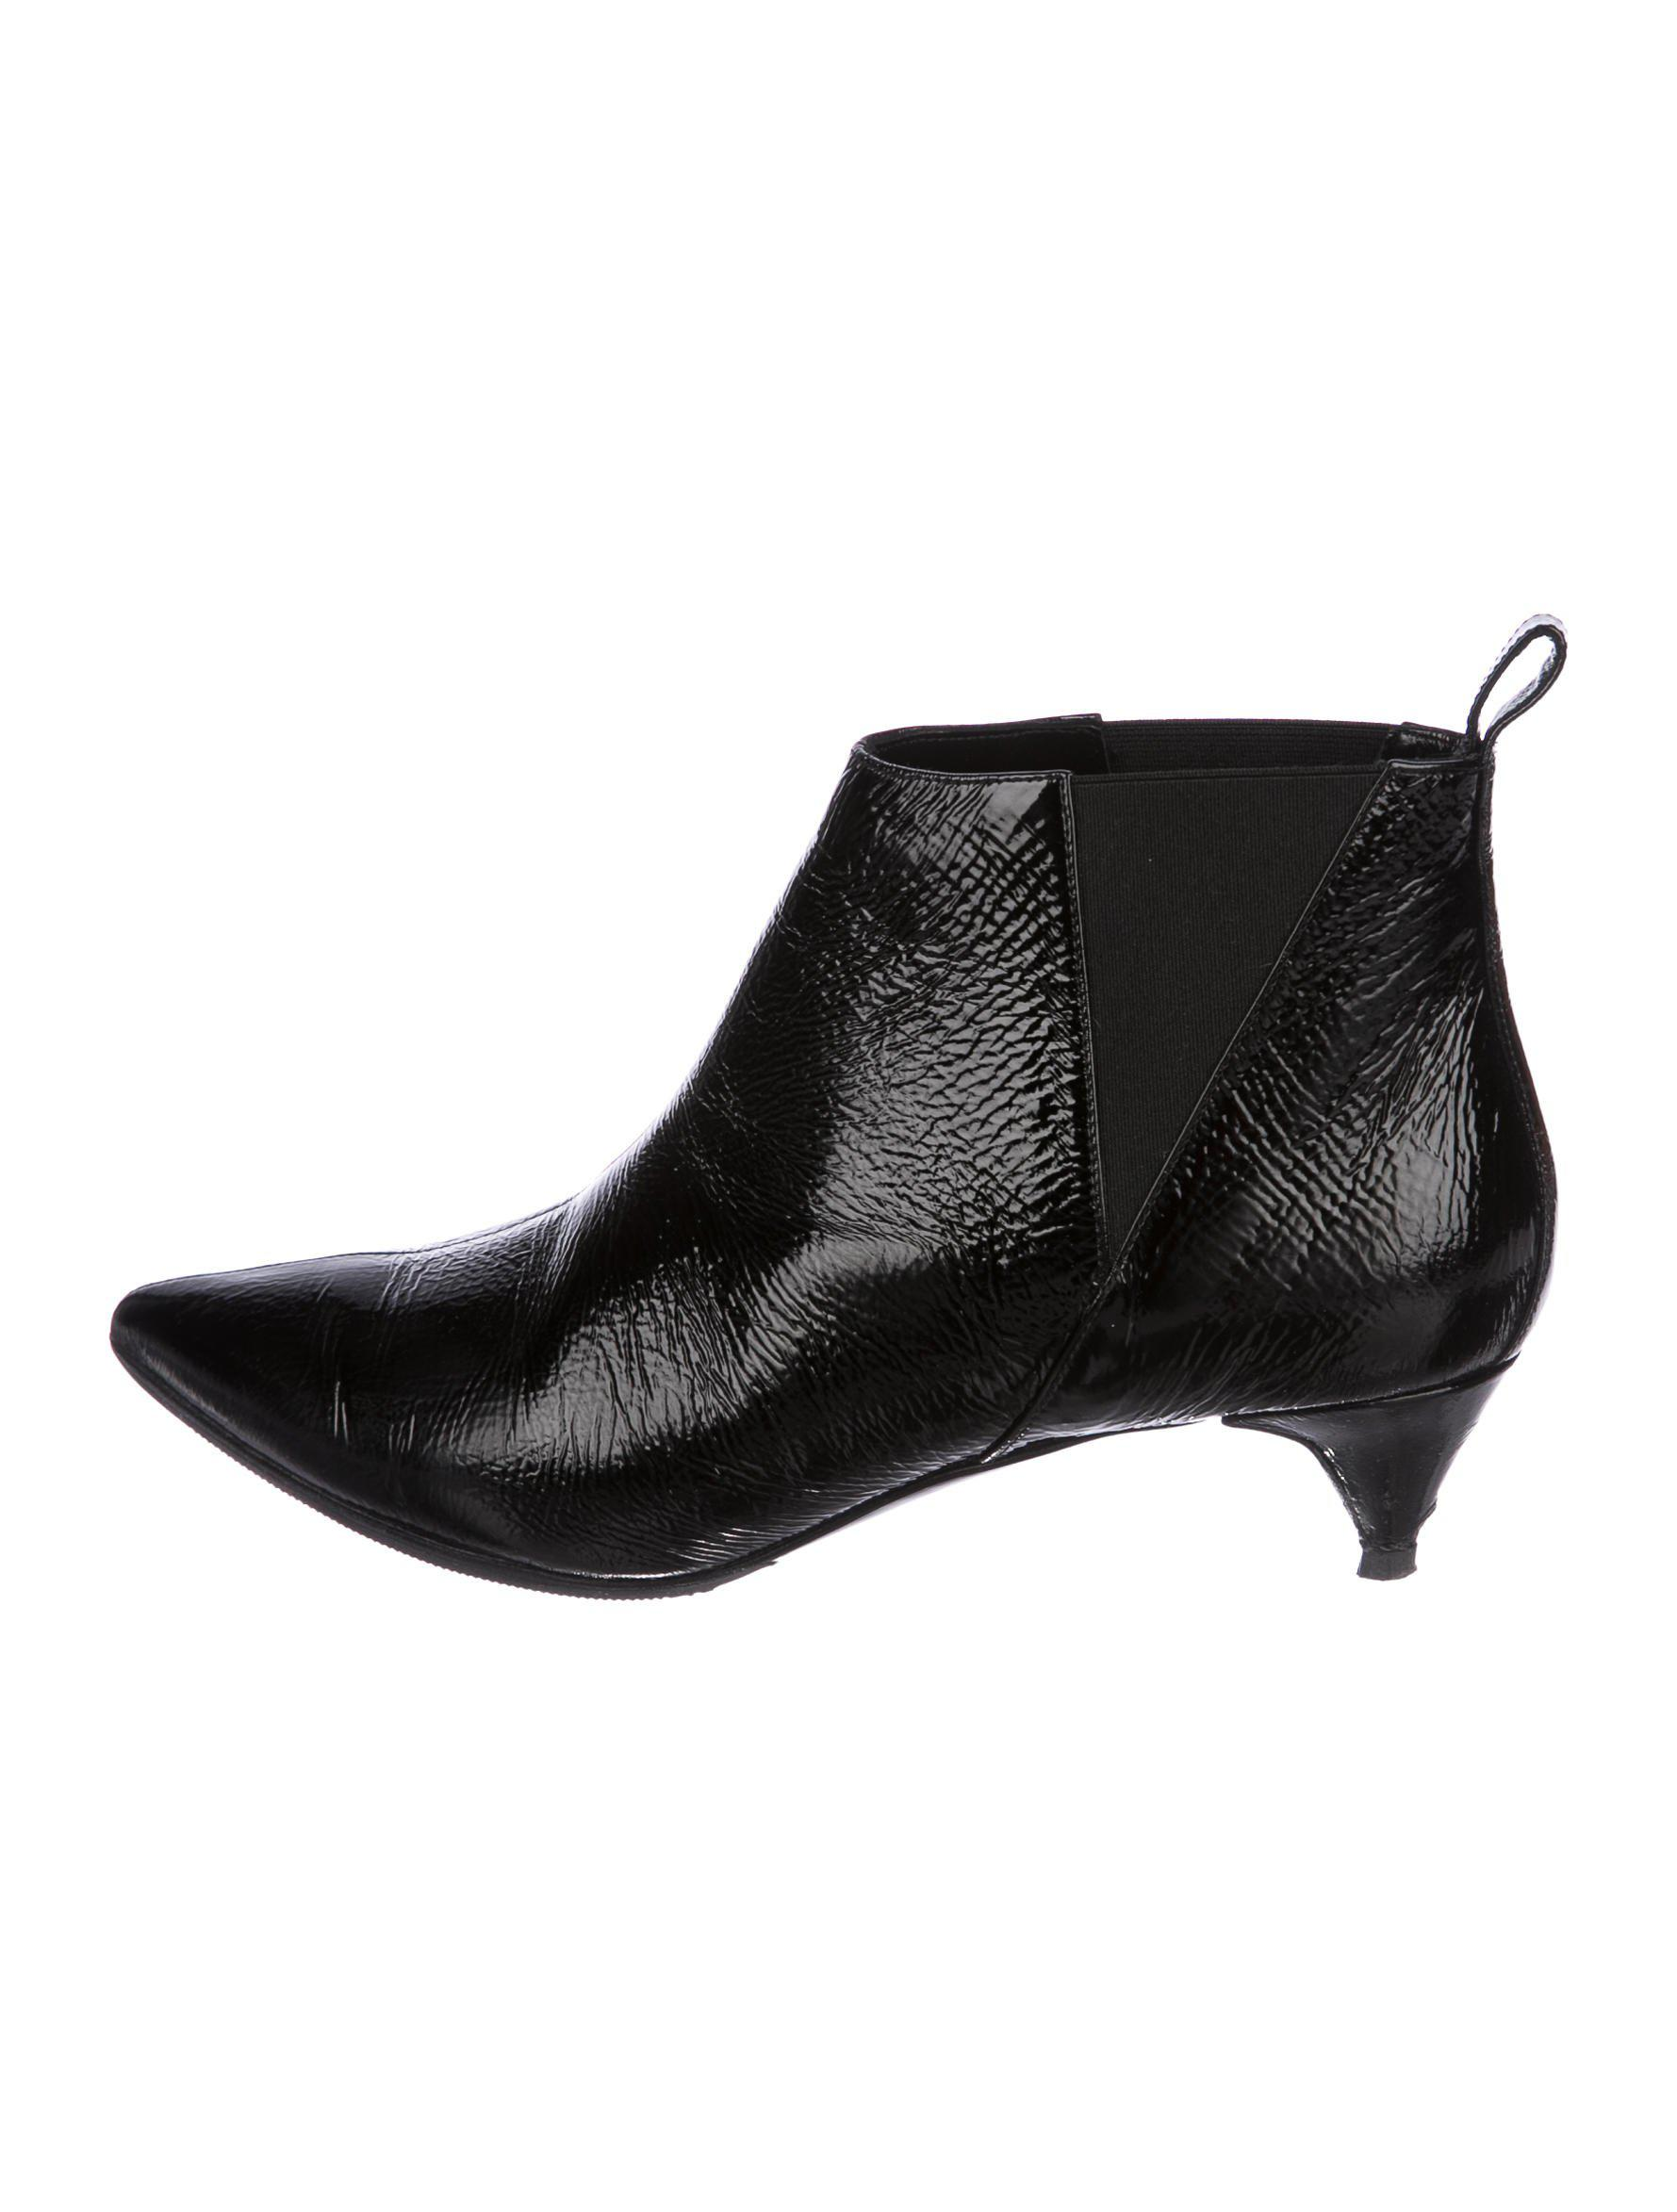 Pierre Hardy Patent Leather Ankle Boots Discount Clearance Store Huge Surprise Sale Online Buy Online New Buy Cheap Brand New Unisex jeRwzIq